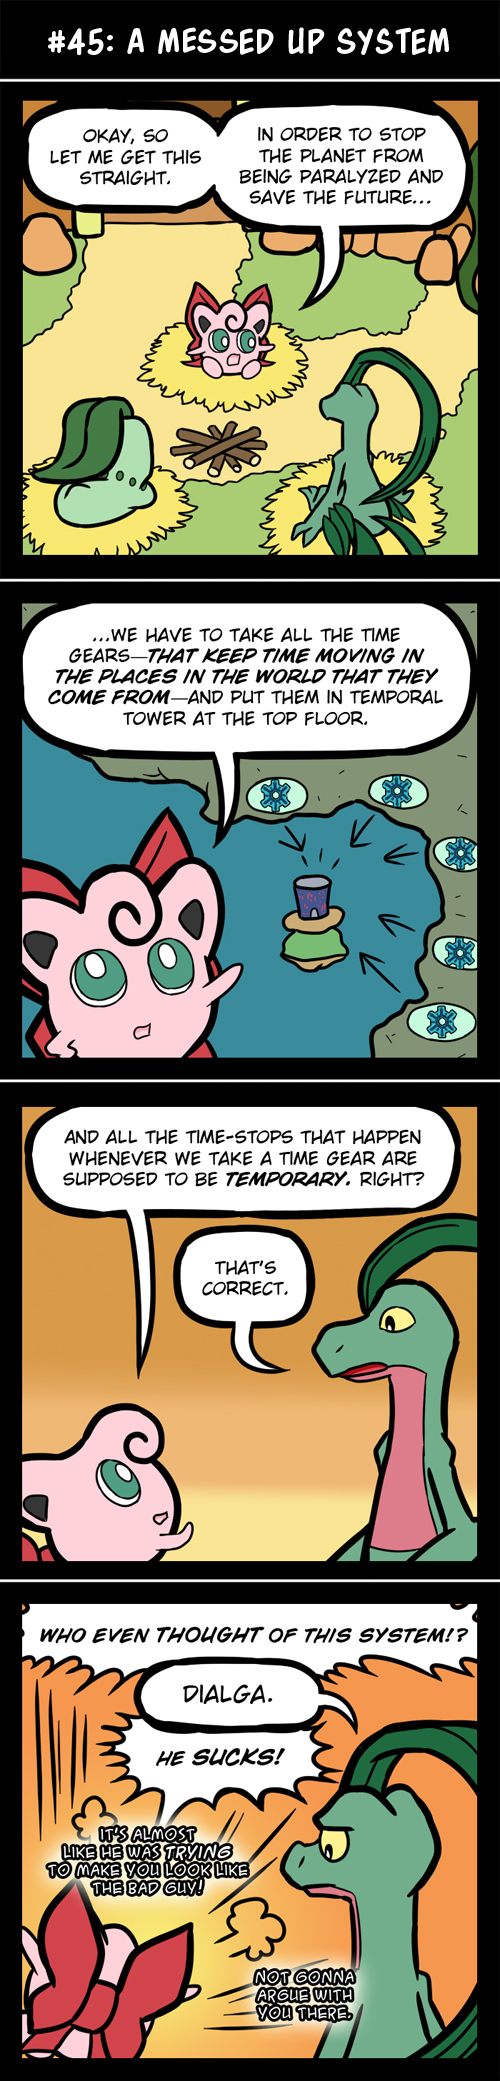 Comic 45 A Messed Up System By Galactic Rainbow On Deviantart